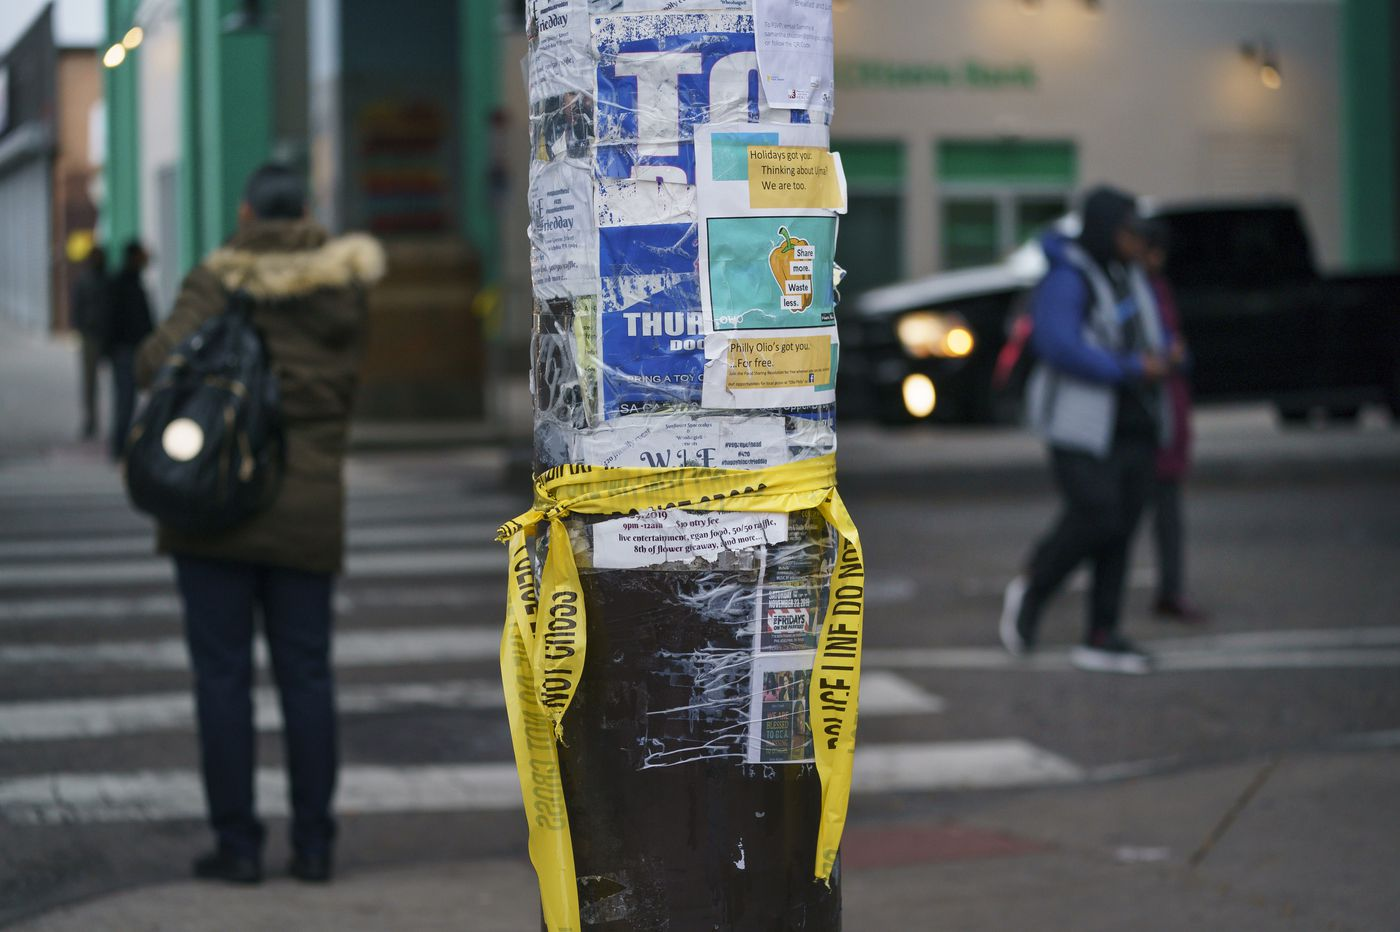 Philly triple shooting leaves 2 men critically wounded